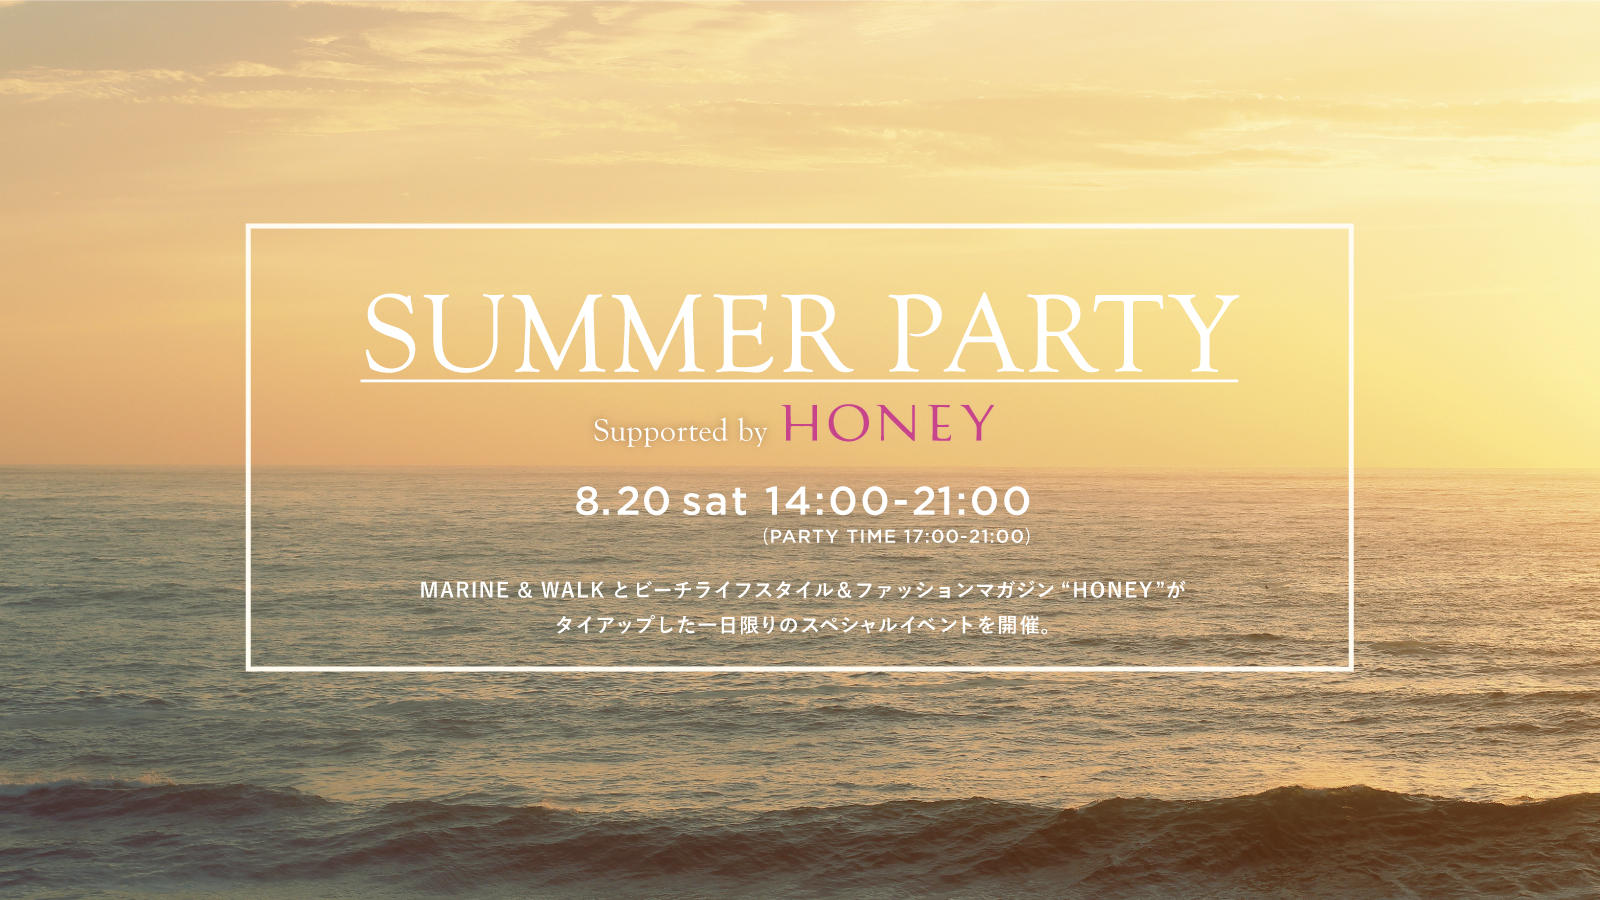 8/20(sat) SUMMER PARTY Supported by HONEY